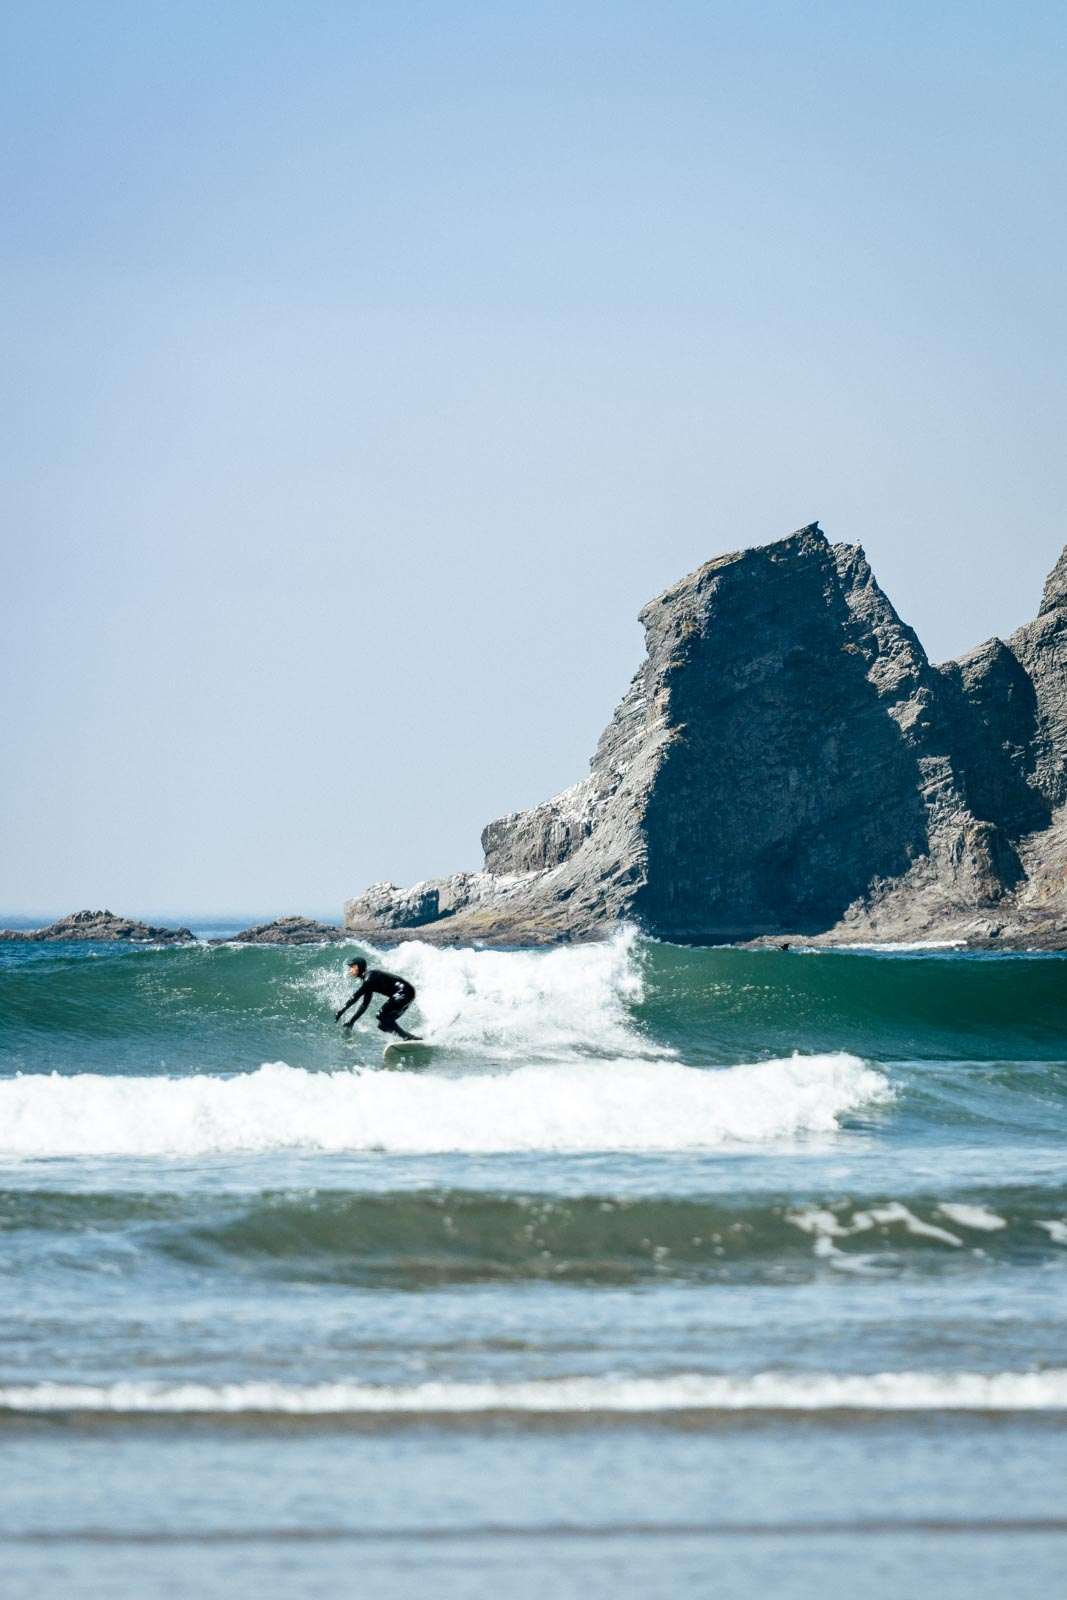 Surfer surfing a wave with rocky outcrop in background at Short Sand Beach near Cannon Beach